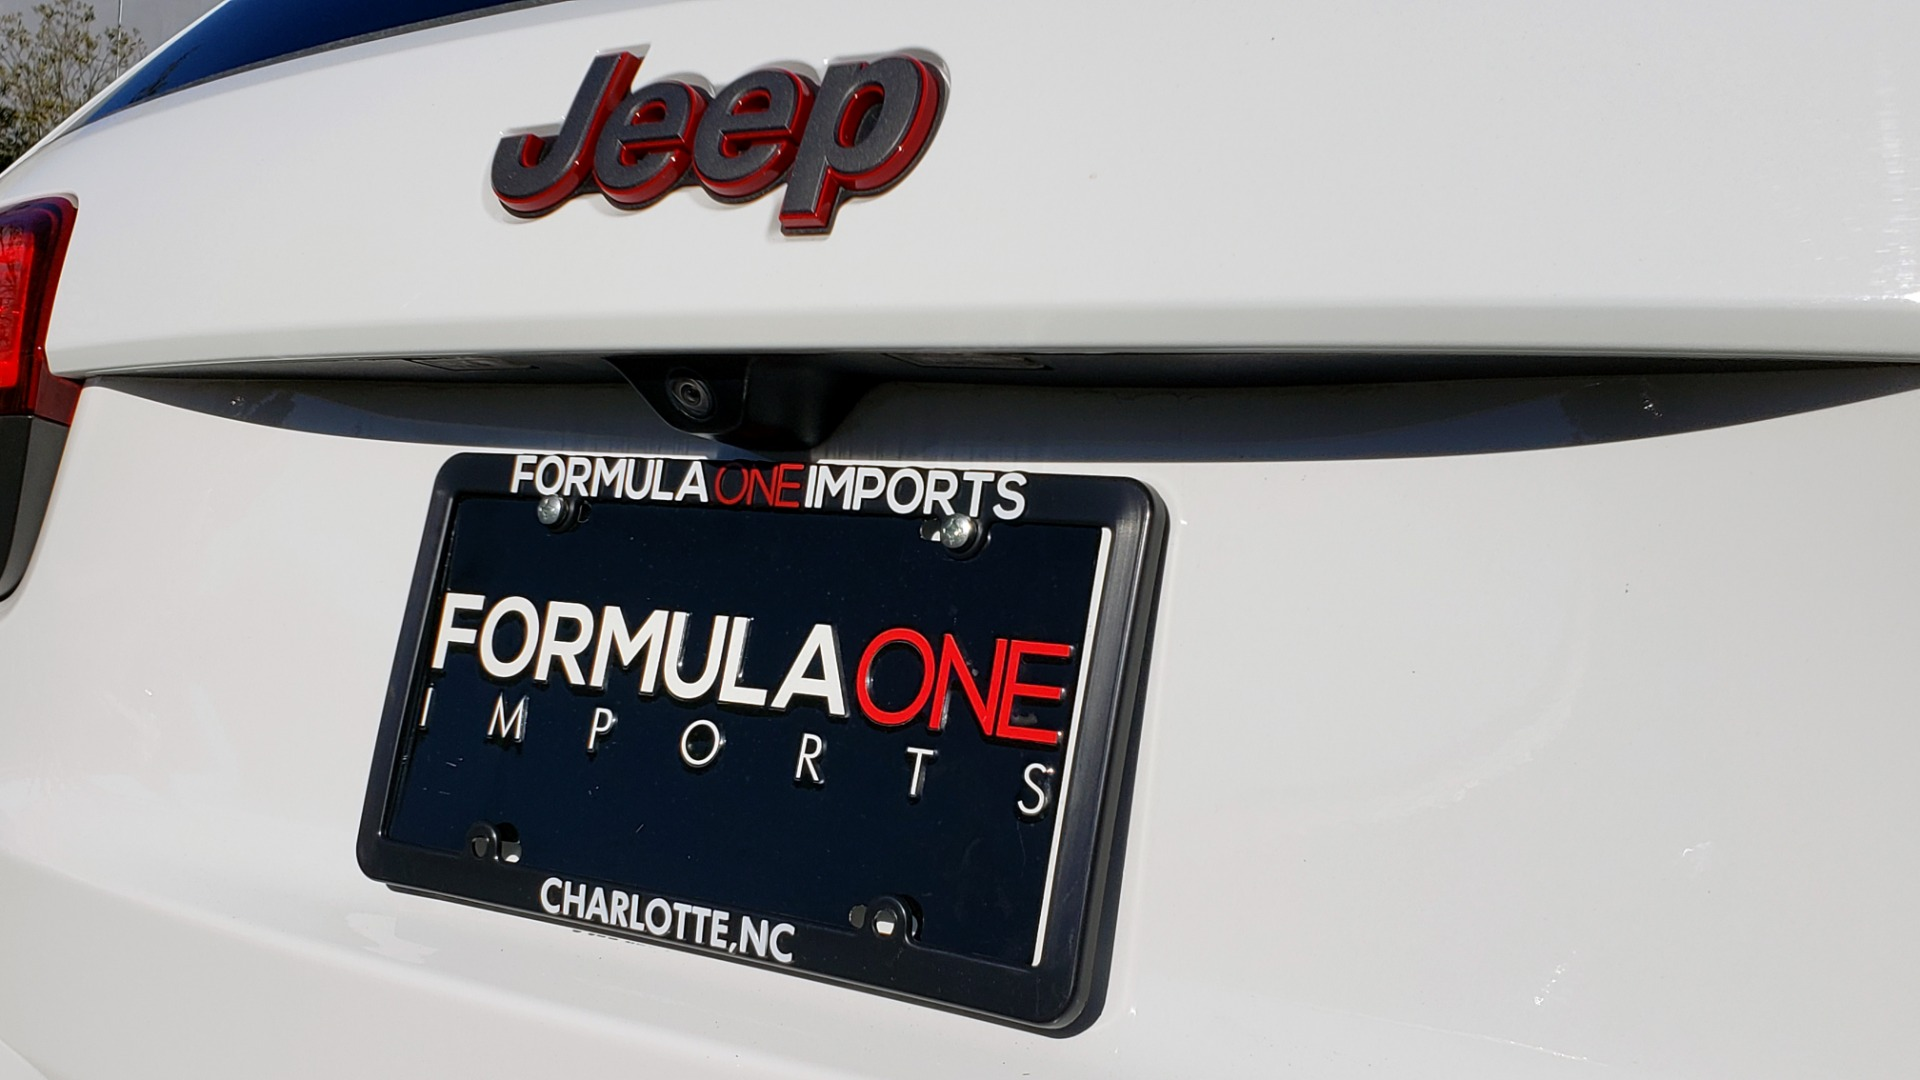 Used 2018 Jeep GRAND CHEROKEE TRAILHAWK 4X4 / NAV / REARVIEW / V6 / AUTO for sale Sold at Formula Imports in Charlotte NC 28227 26